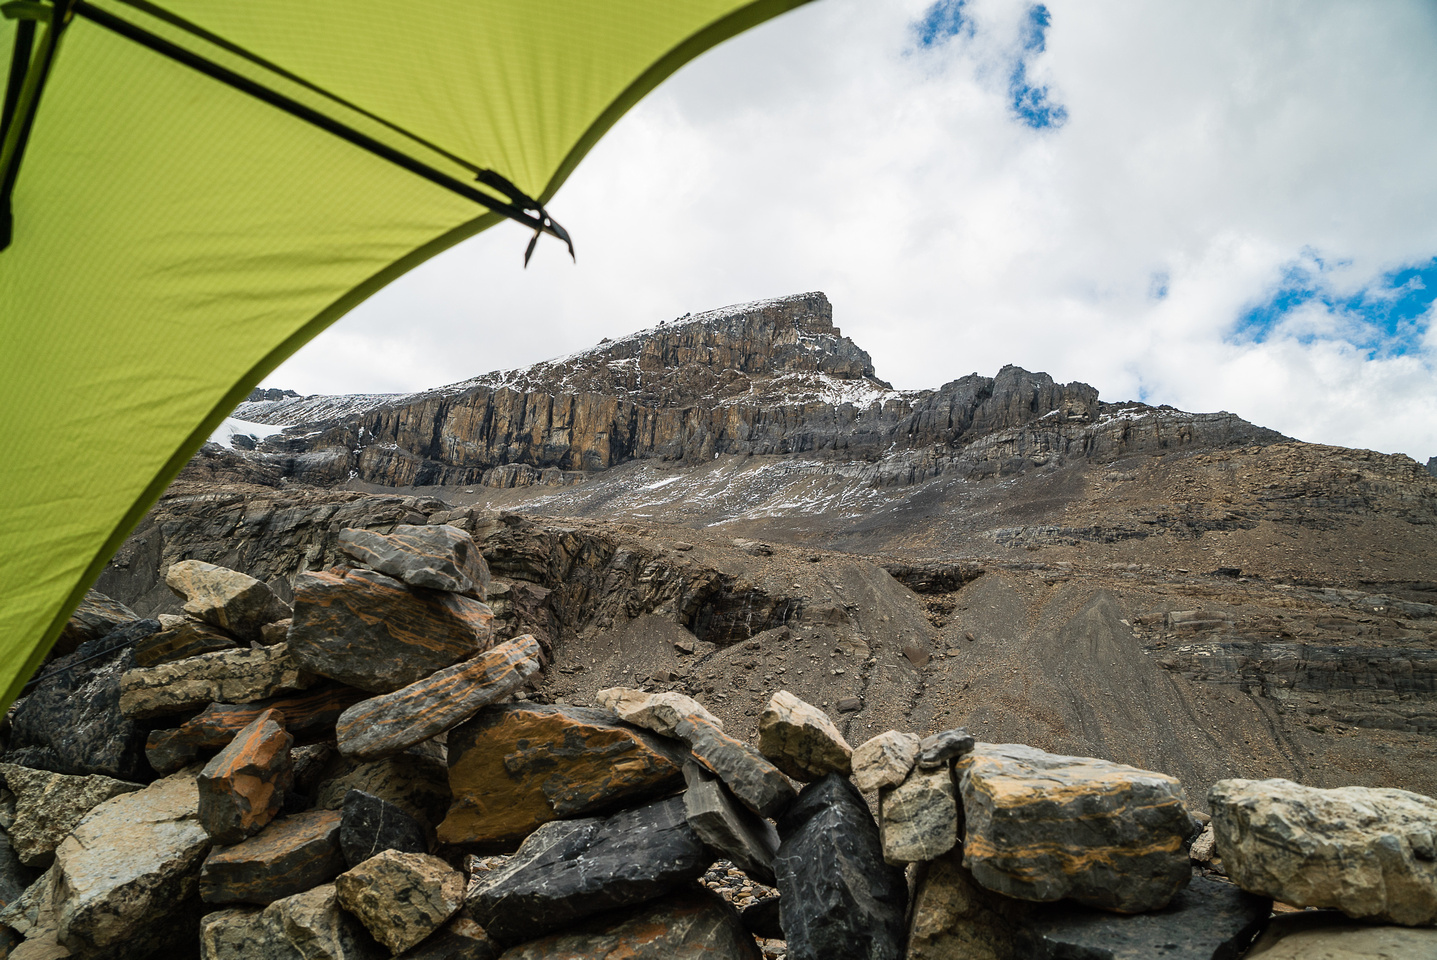 Views from my tent at the Woolley bivy site.